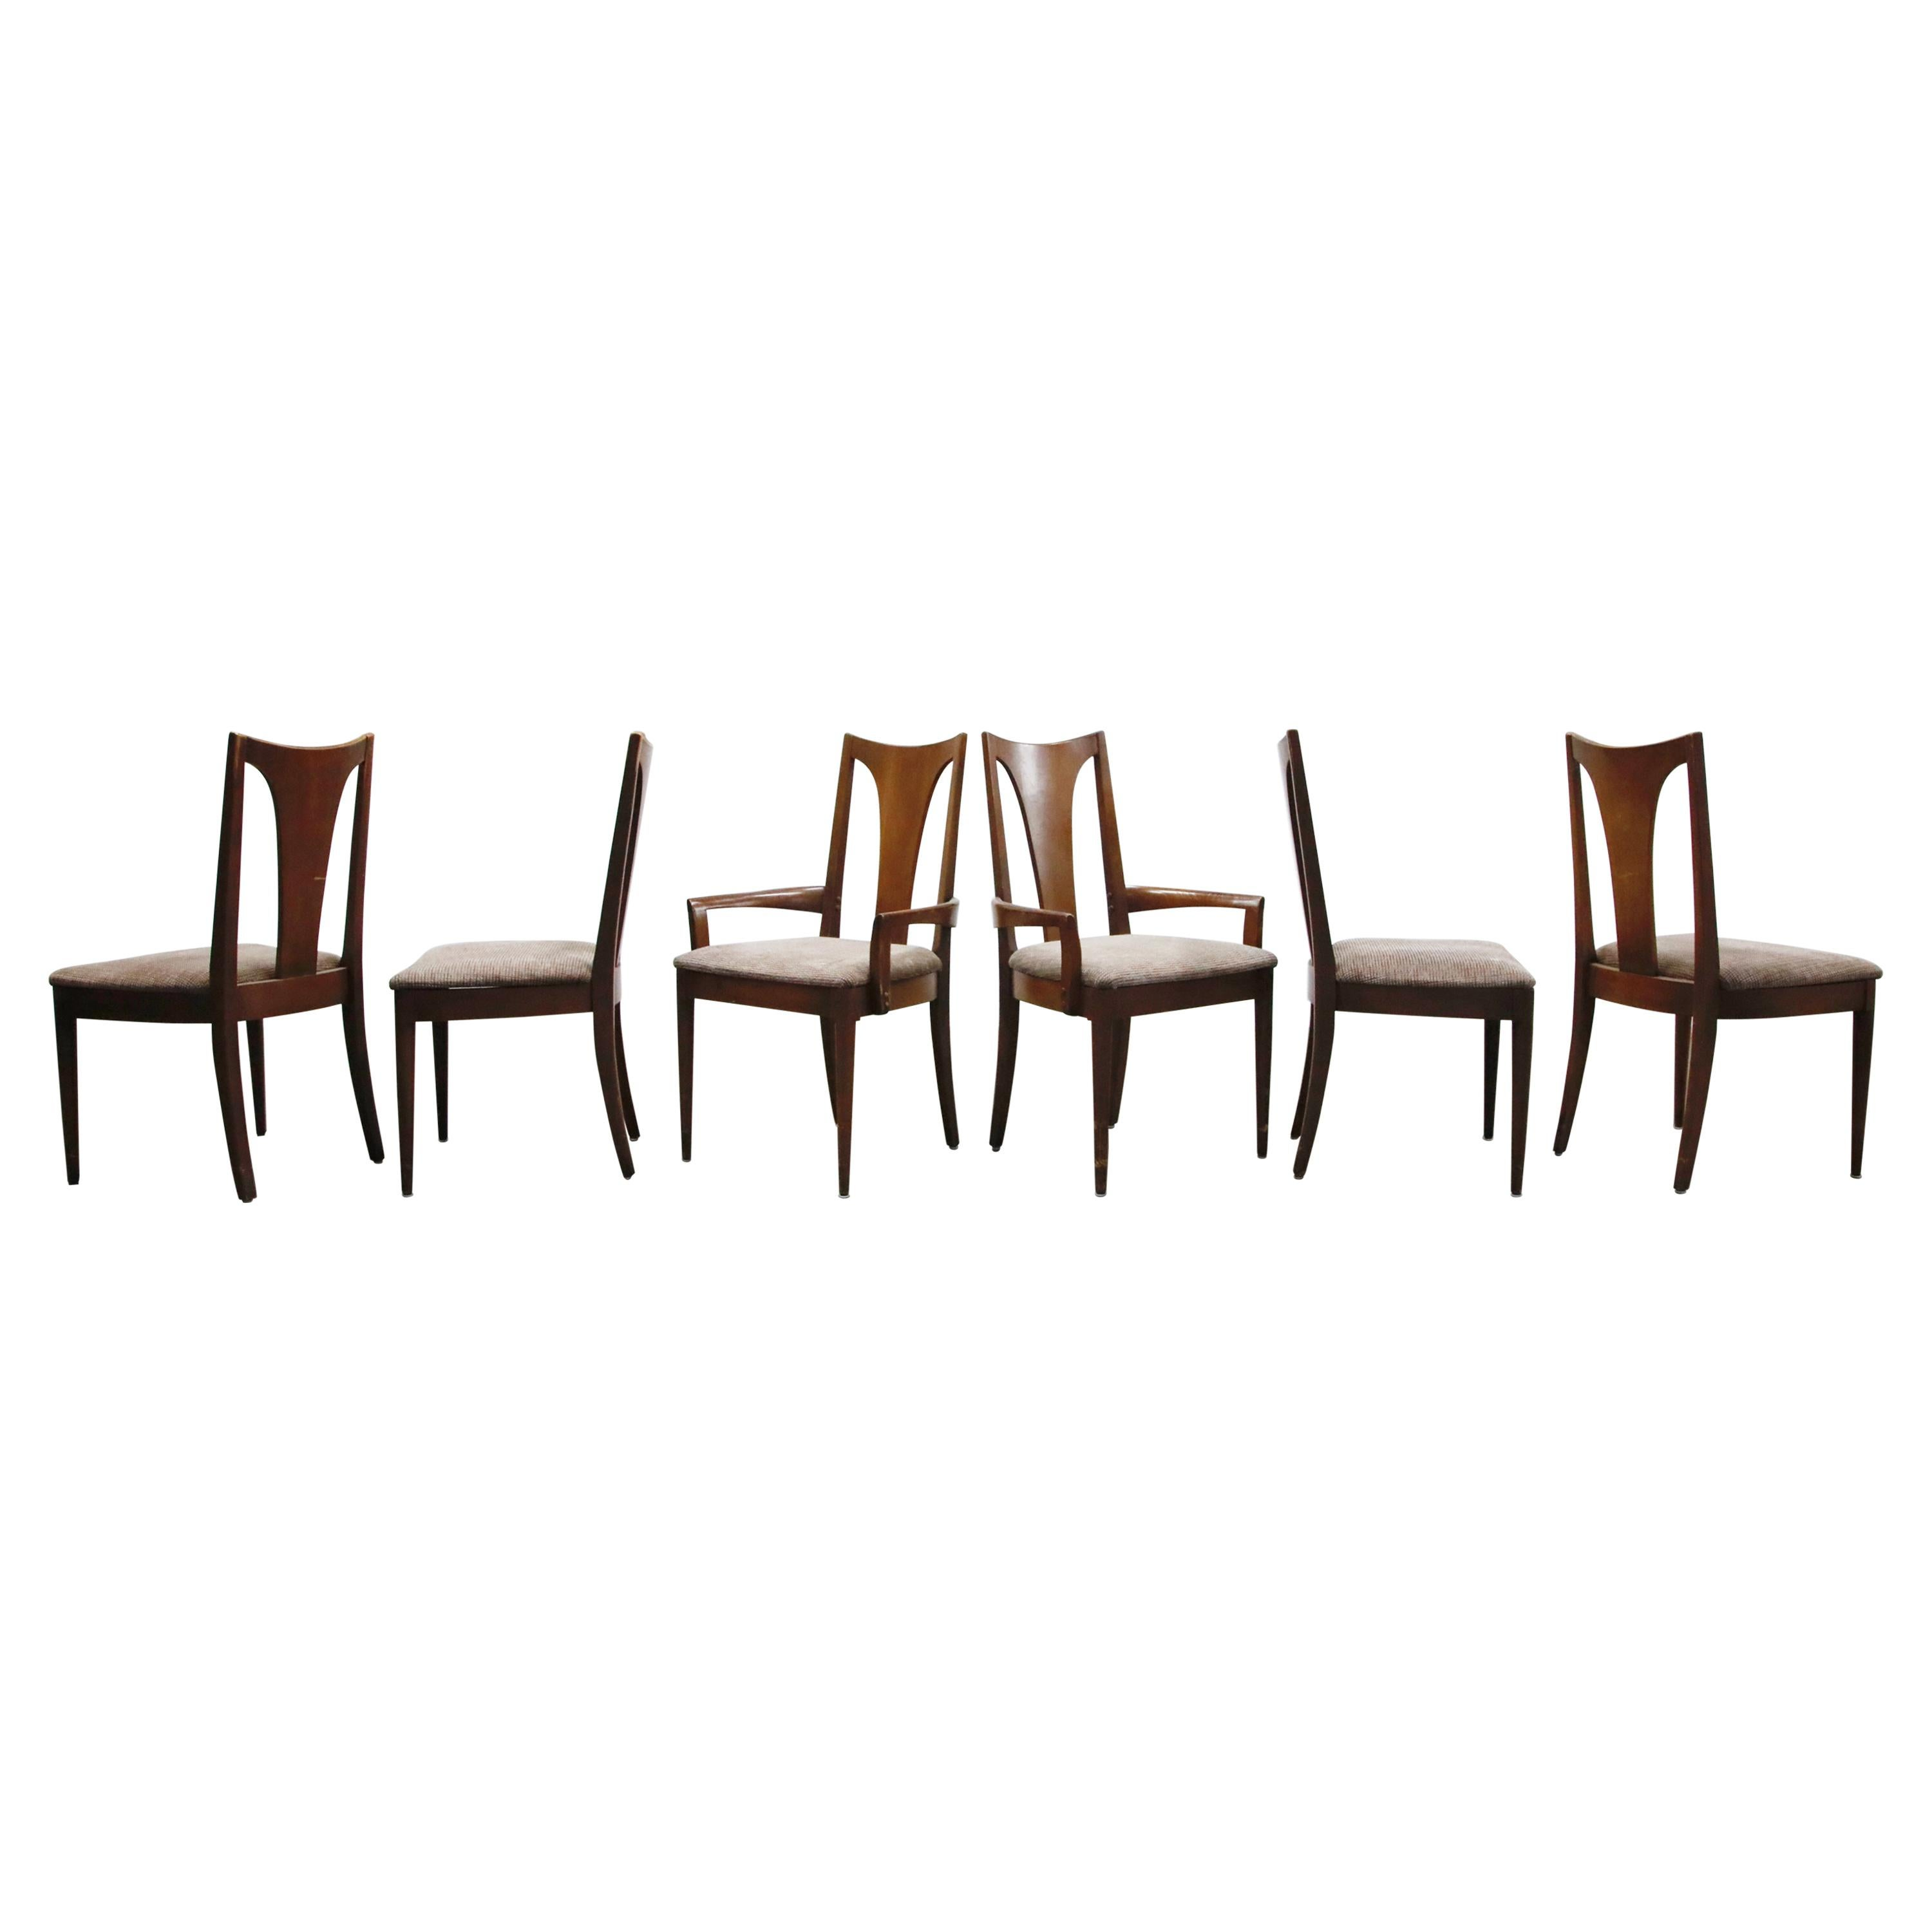 Set of Six Mid-Century Modern Dining Chairs by JB Van Sciver, circa 1960, Signed